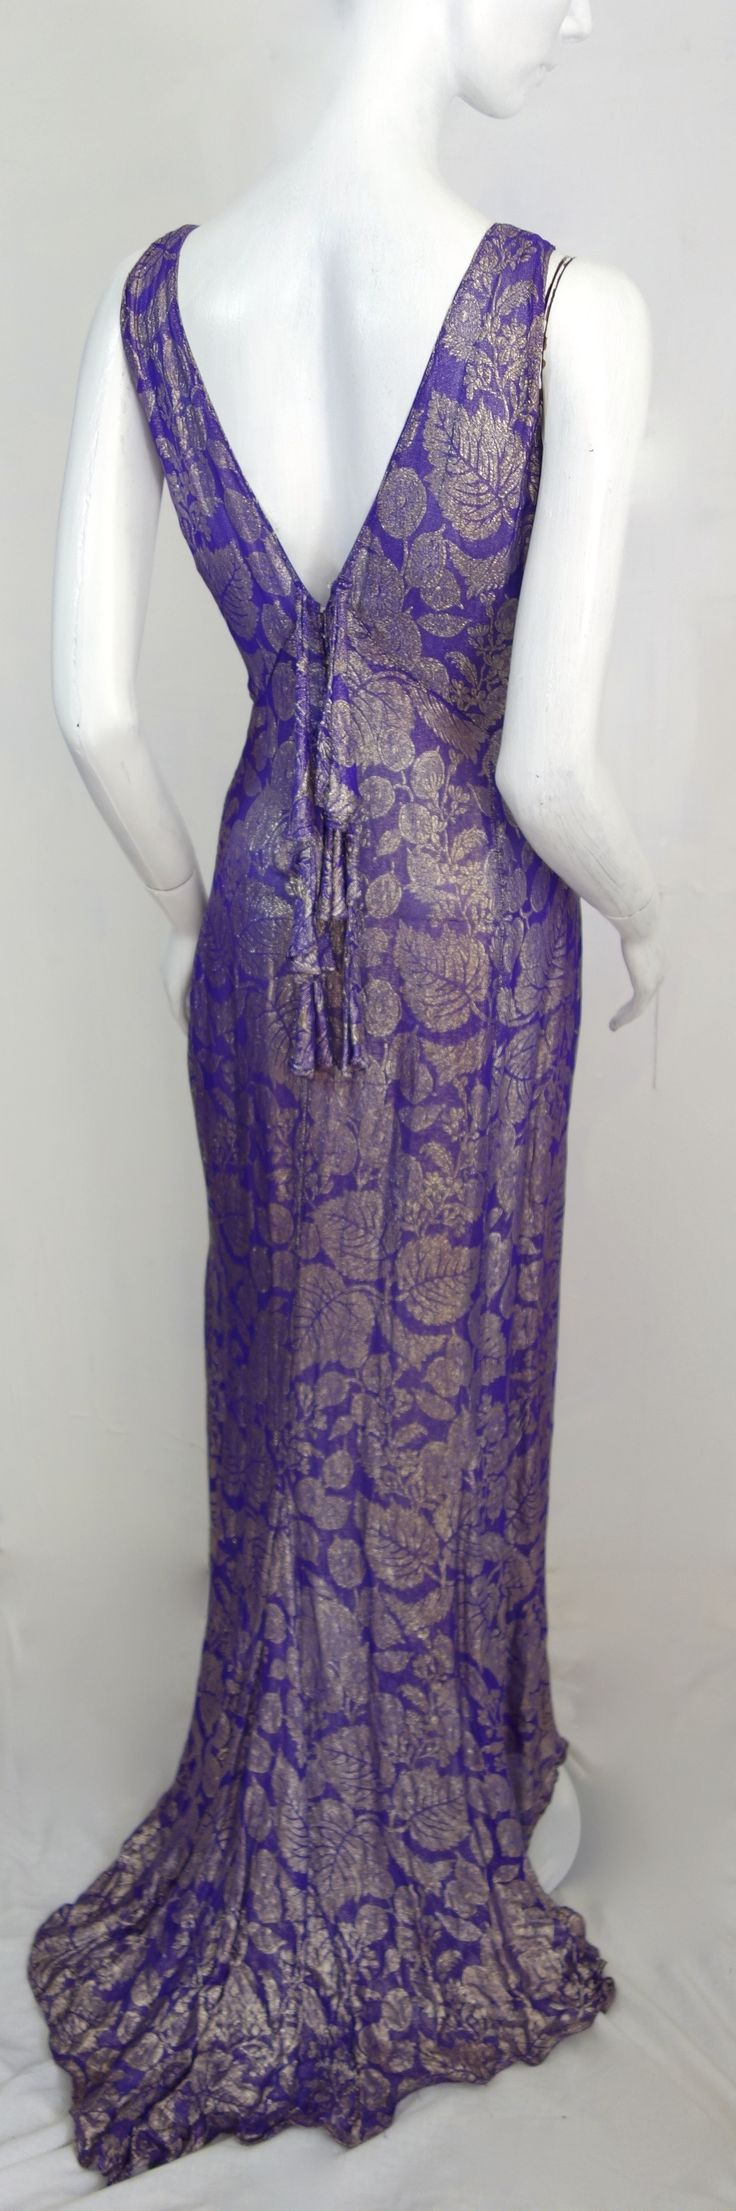 exquisite heavenly purple & gold lame couture late 1920s-30s by thee hub